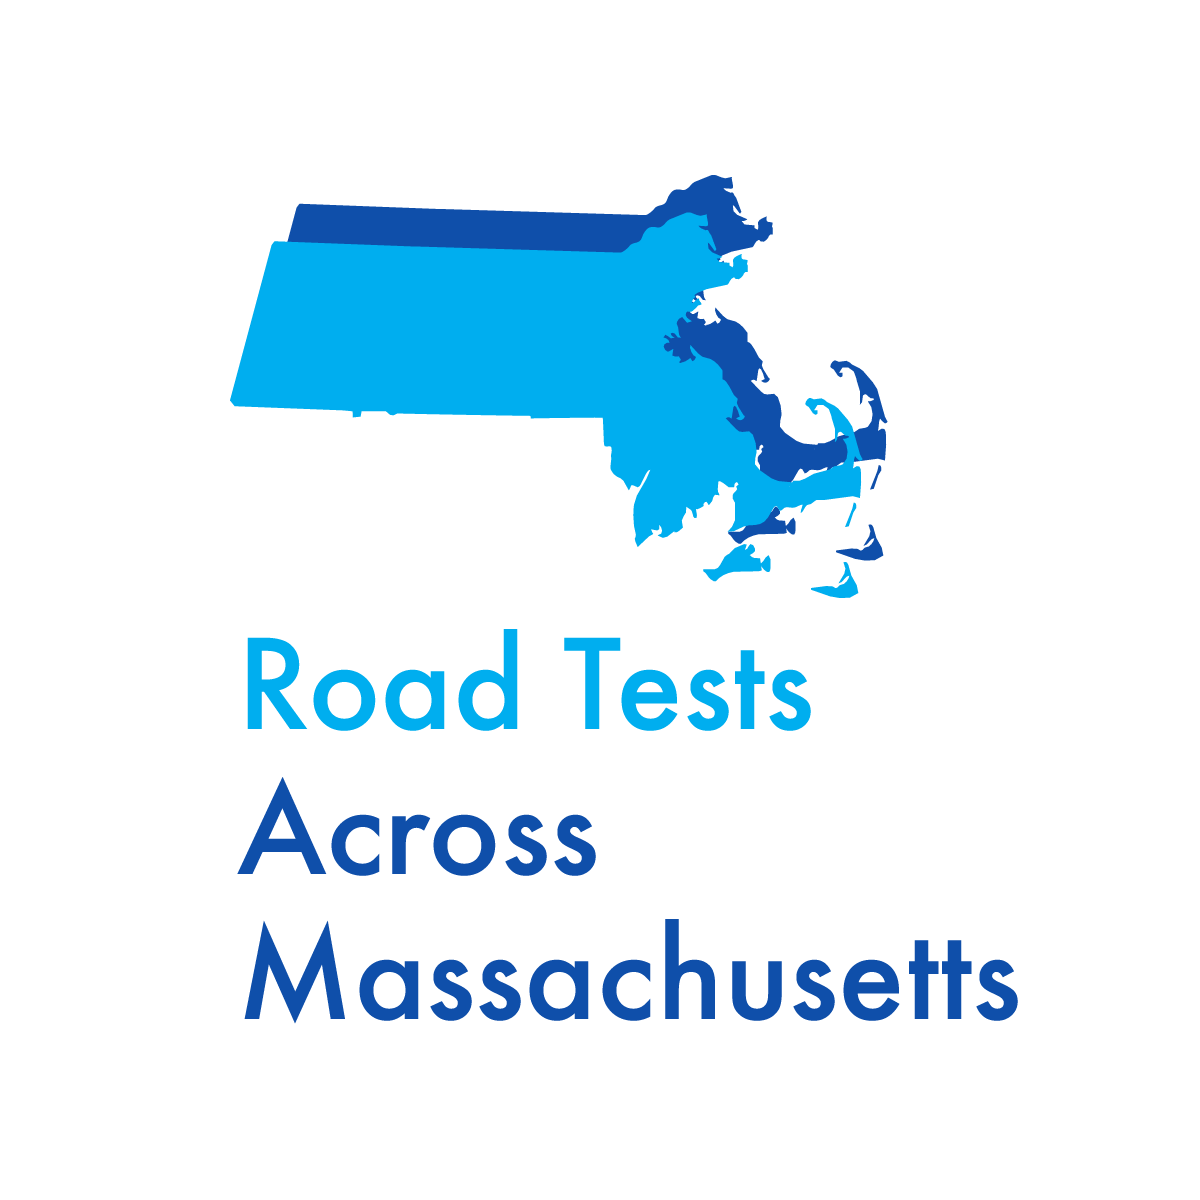 Car and Driver for Massachusetts Driver's License Road Test